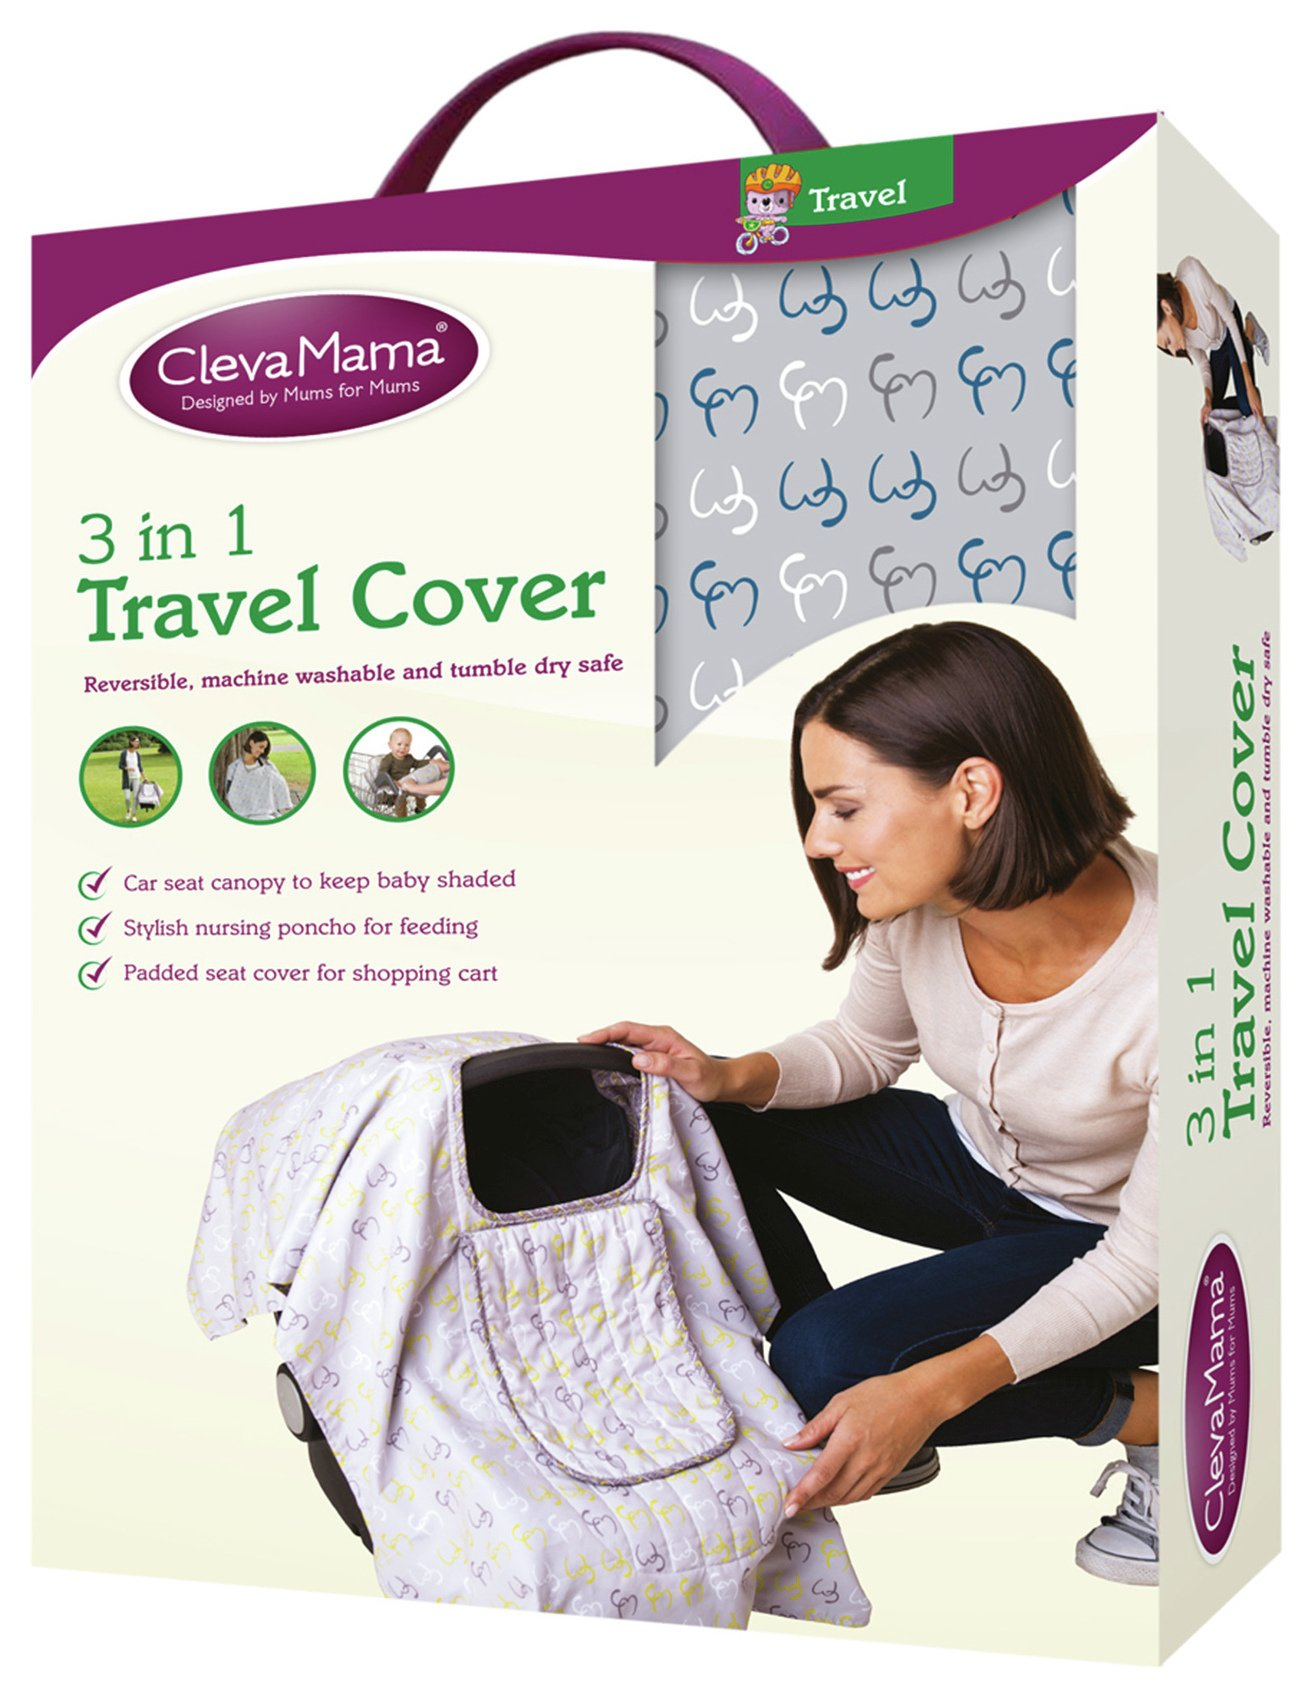 Image of Clevamama 3 in 1 Travel Cover - Capri.